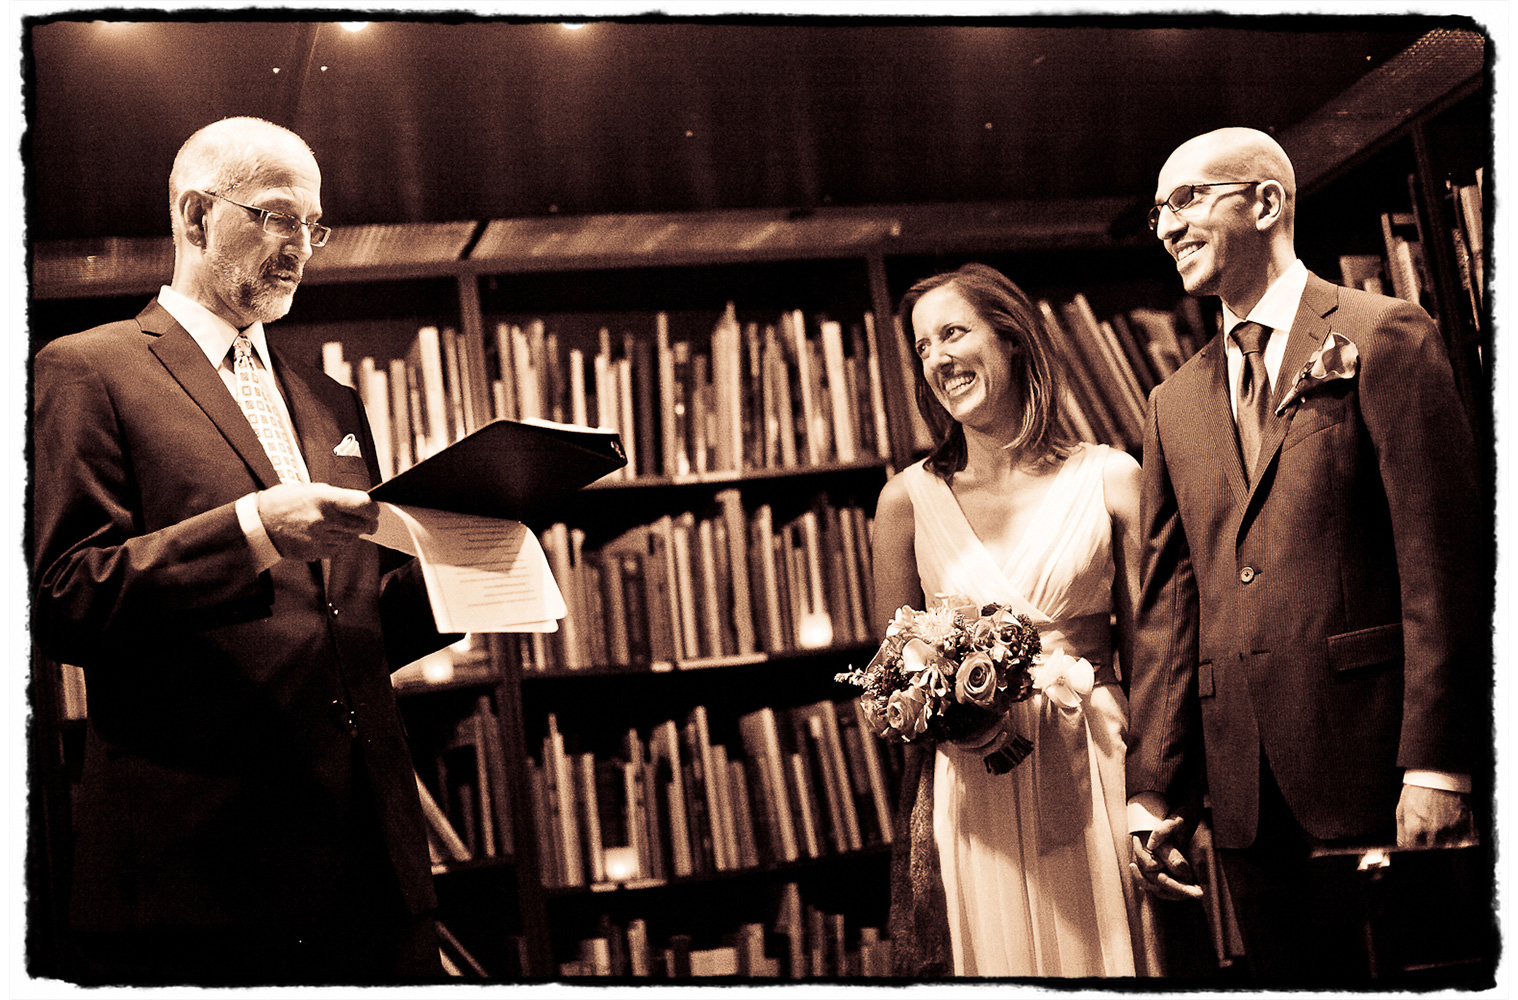 Adam and Shireen were married by a judge in front of a row of lovely bookshelves at The Housing Works Bookstore in SoHo, NYC.